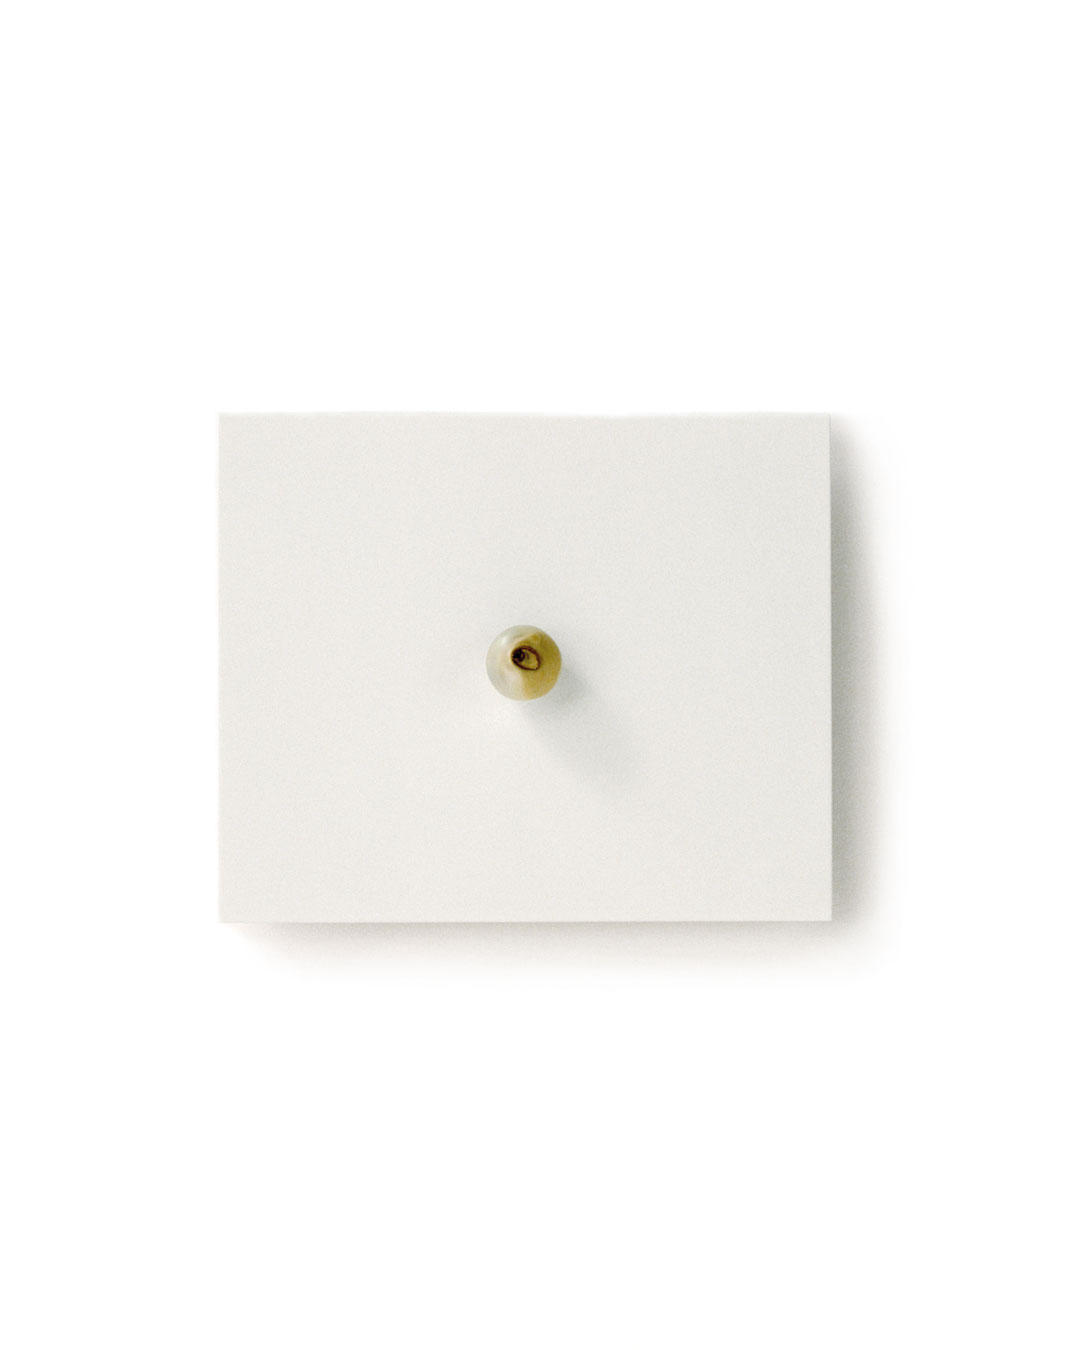 Otto Künzli, Ago Bay, 2009, brooch; pearl, silver, acrylic paint, stainless steel, 77 x 64 x 17 mm (edition 1), €5100